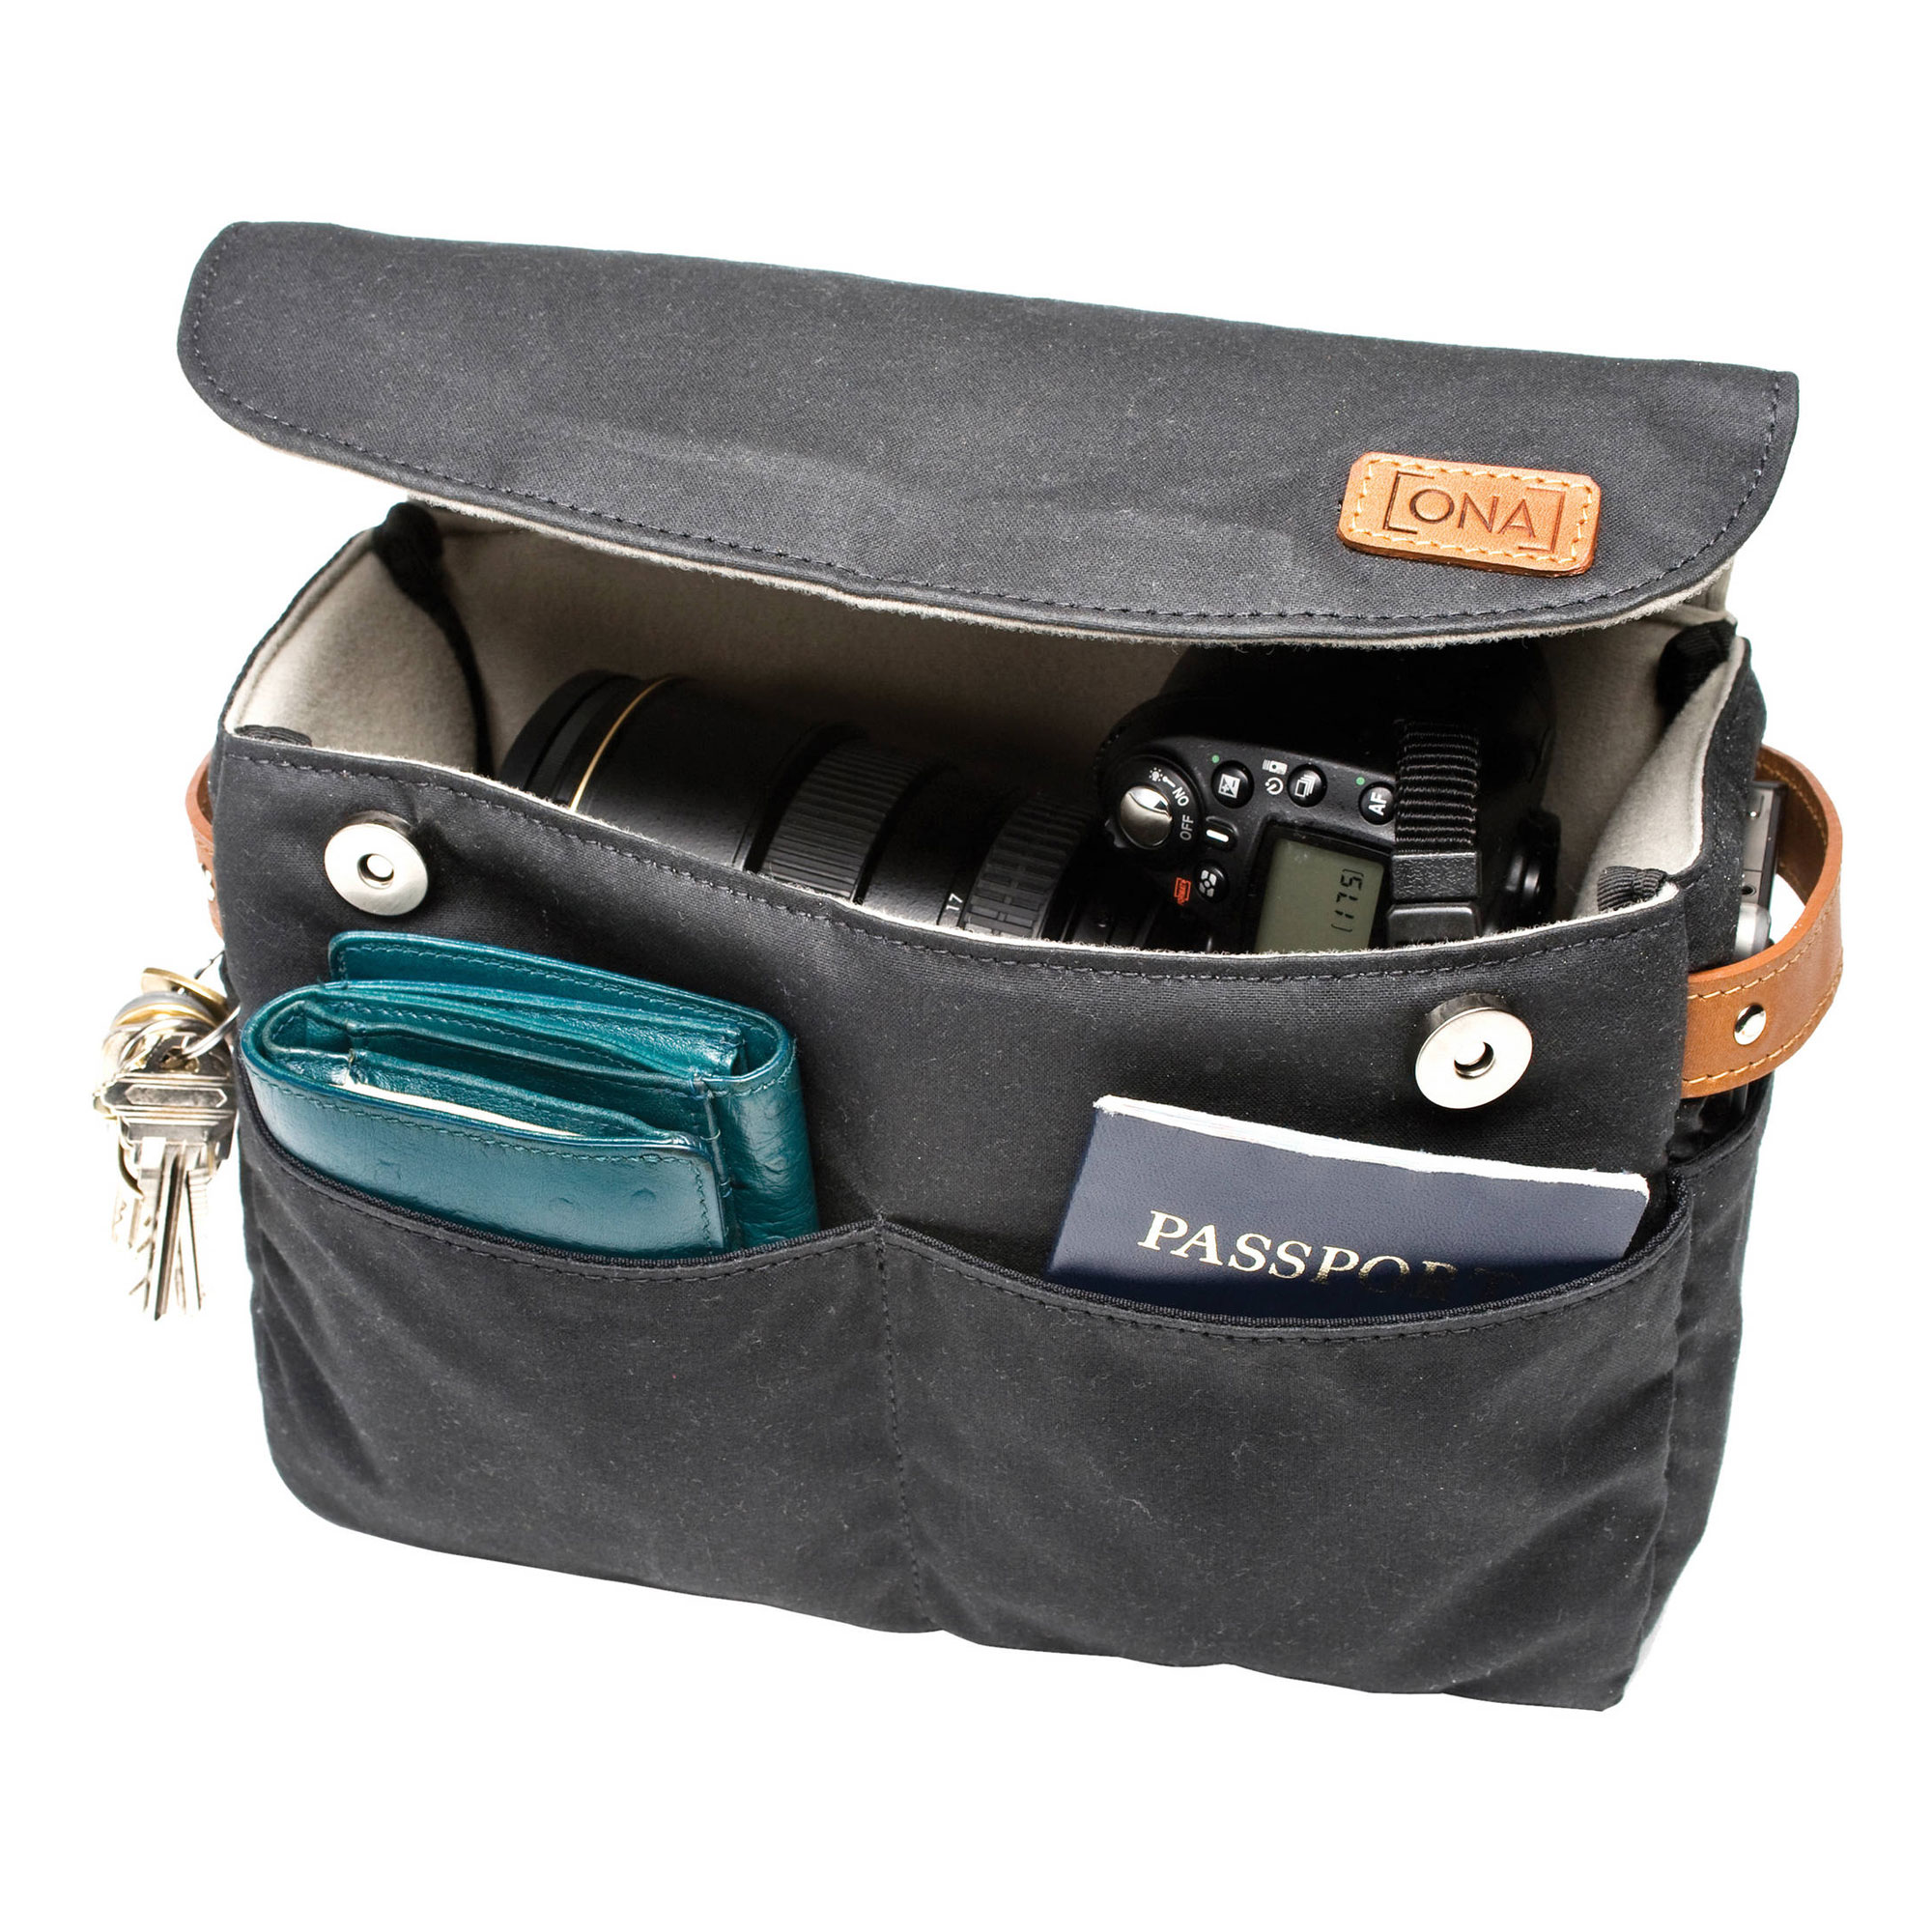 The Roma Camera Insert and Bag Organizer Black